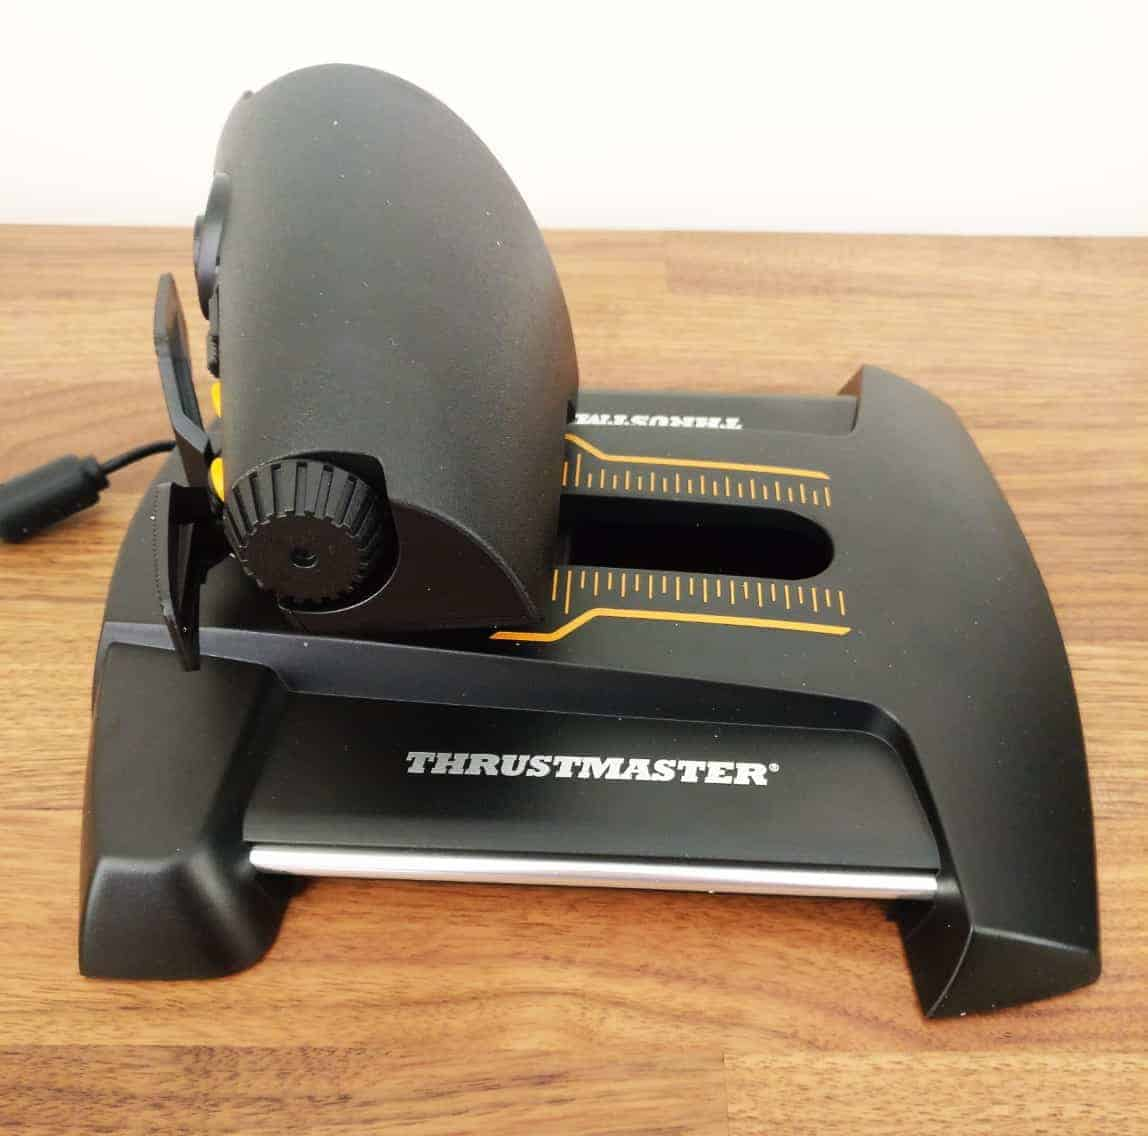 Thrustmaster-Flightstick-Photos07 Thrustmaster T.16000M FCS Hotas Joystick Review